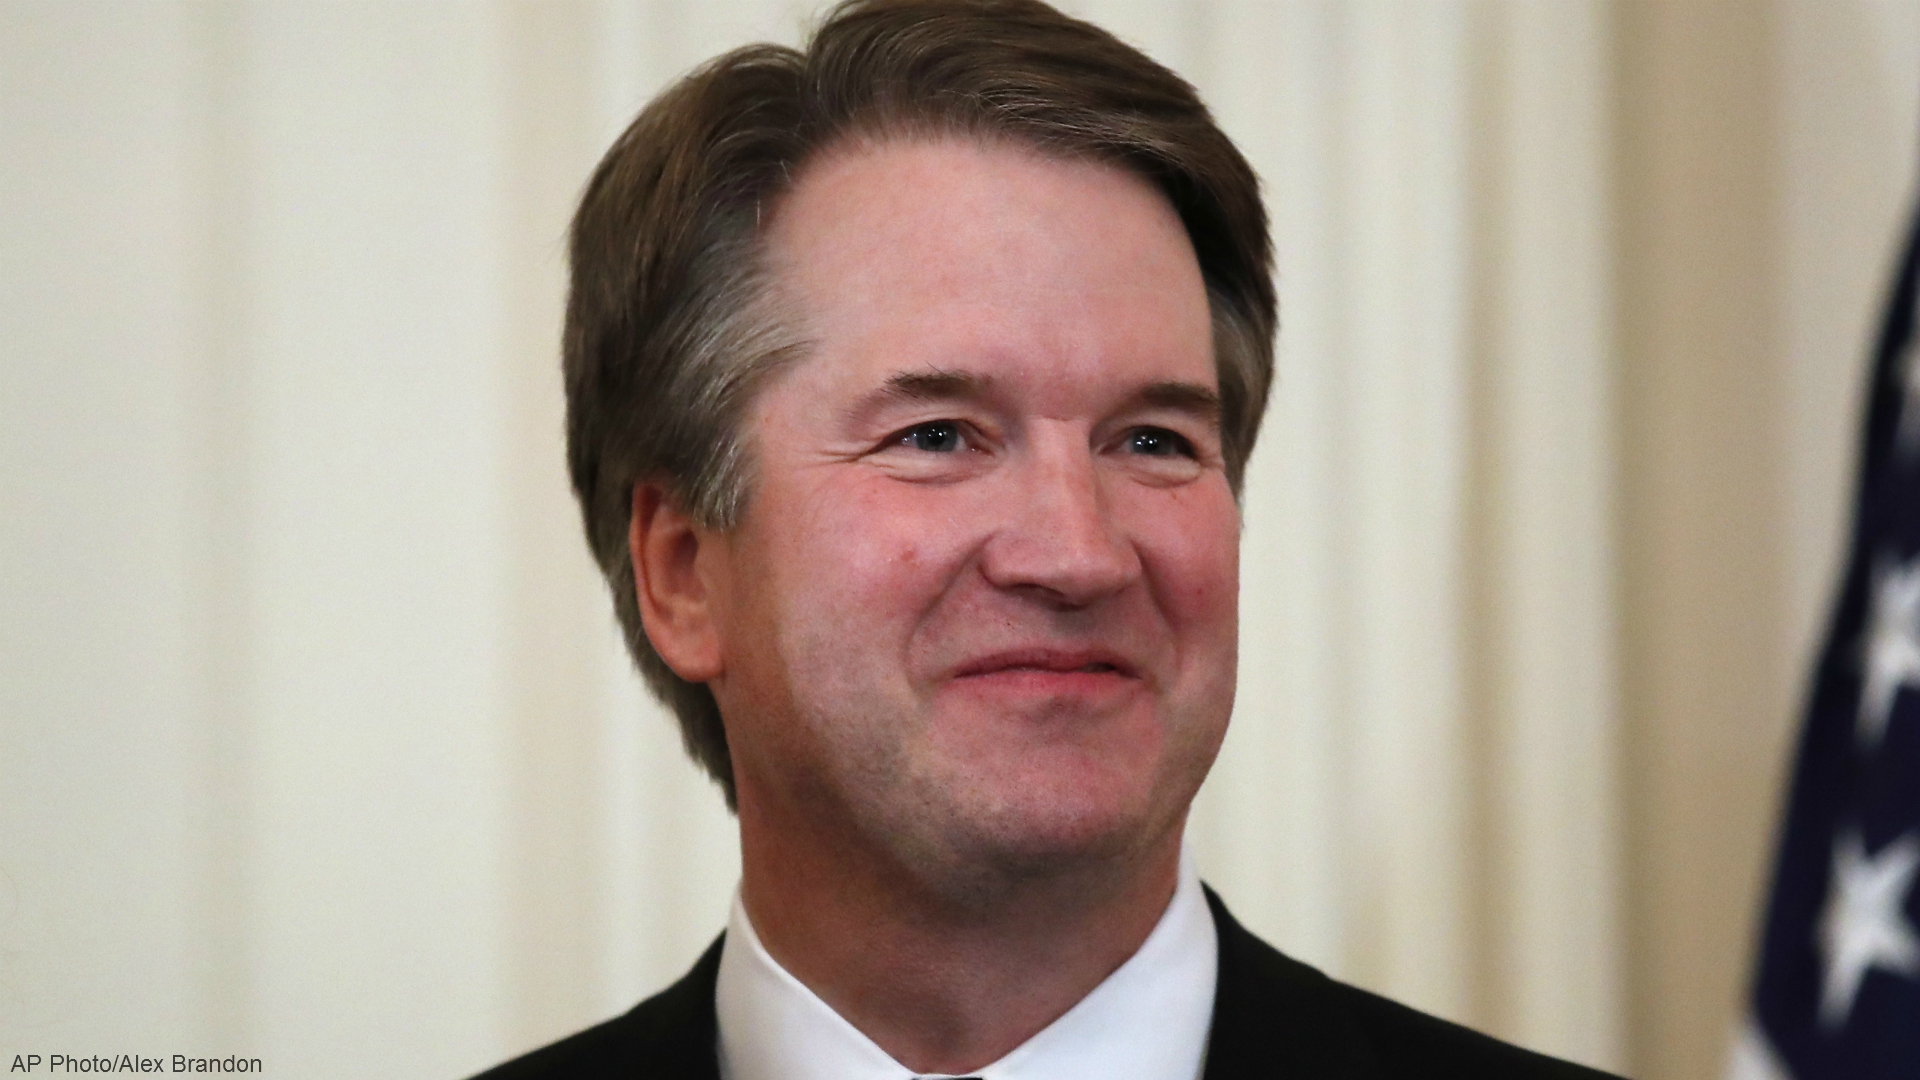 supreme court nominee brett kavanaugh 070918 AP_1531187933965.jpg.jpg